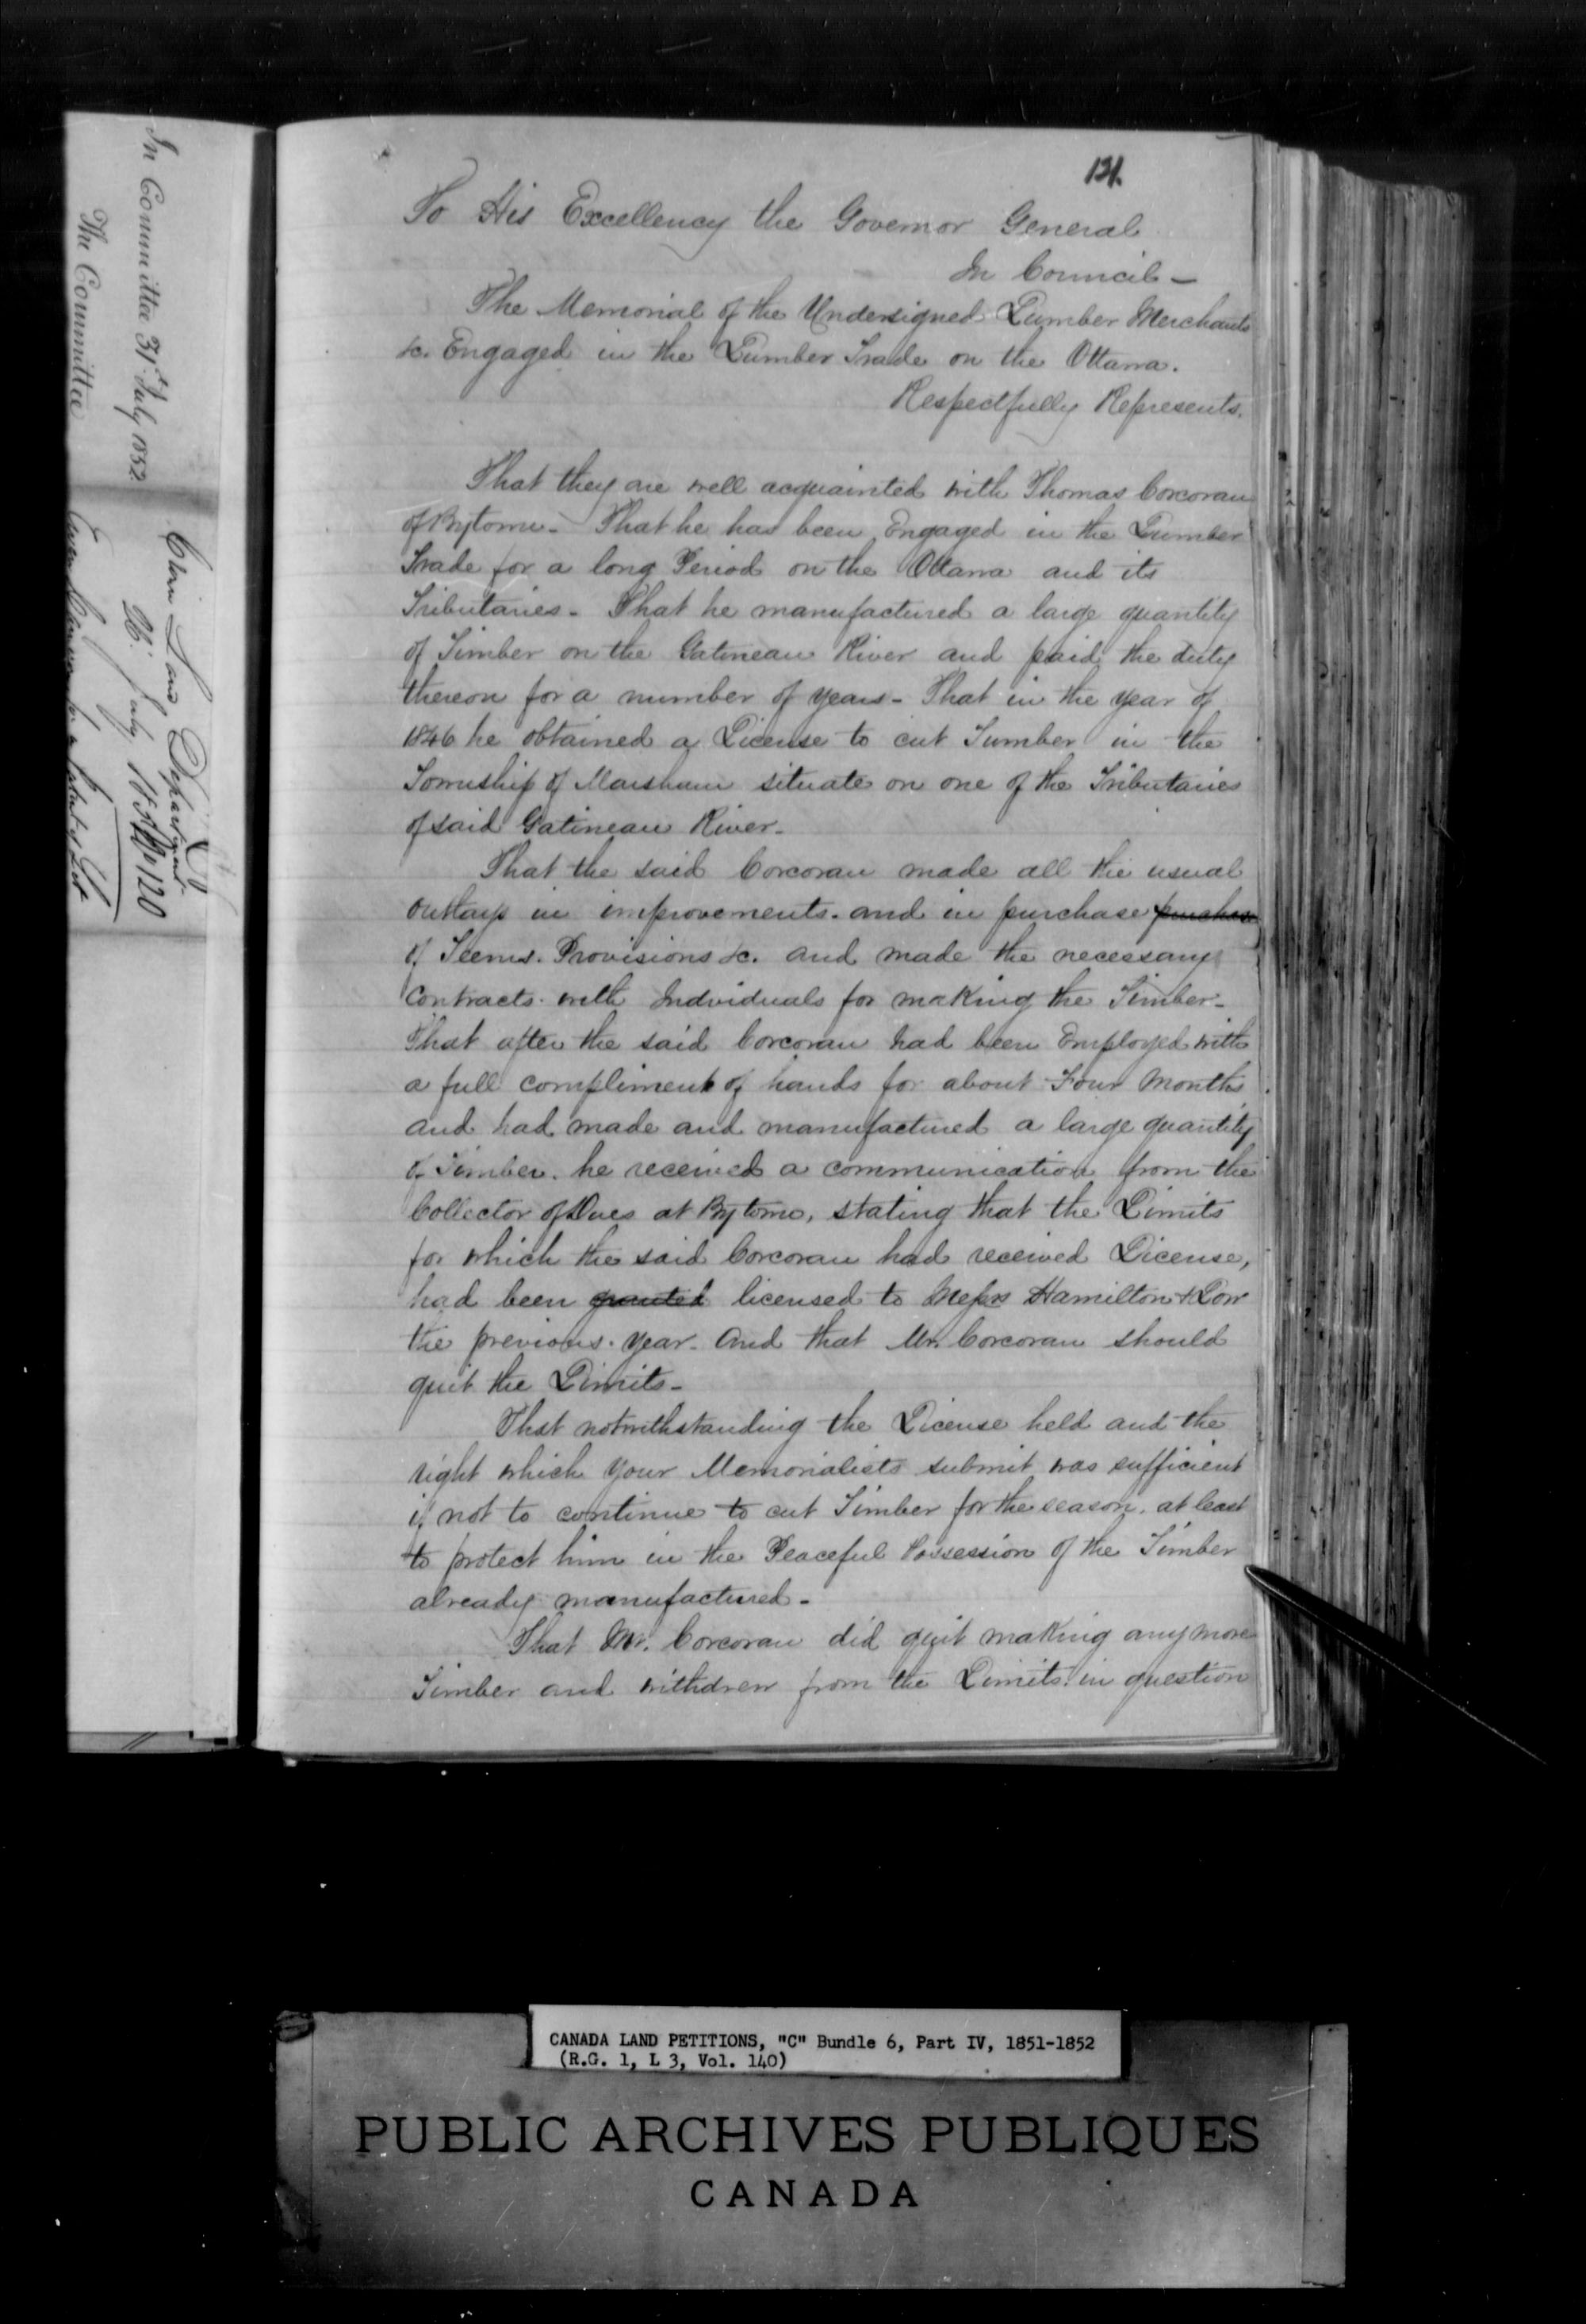 Title: Upper Canada Land Petitions (1763-1865) - Mikan Number: 205131 - Microform: c-1738